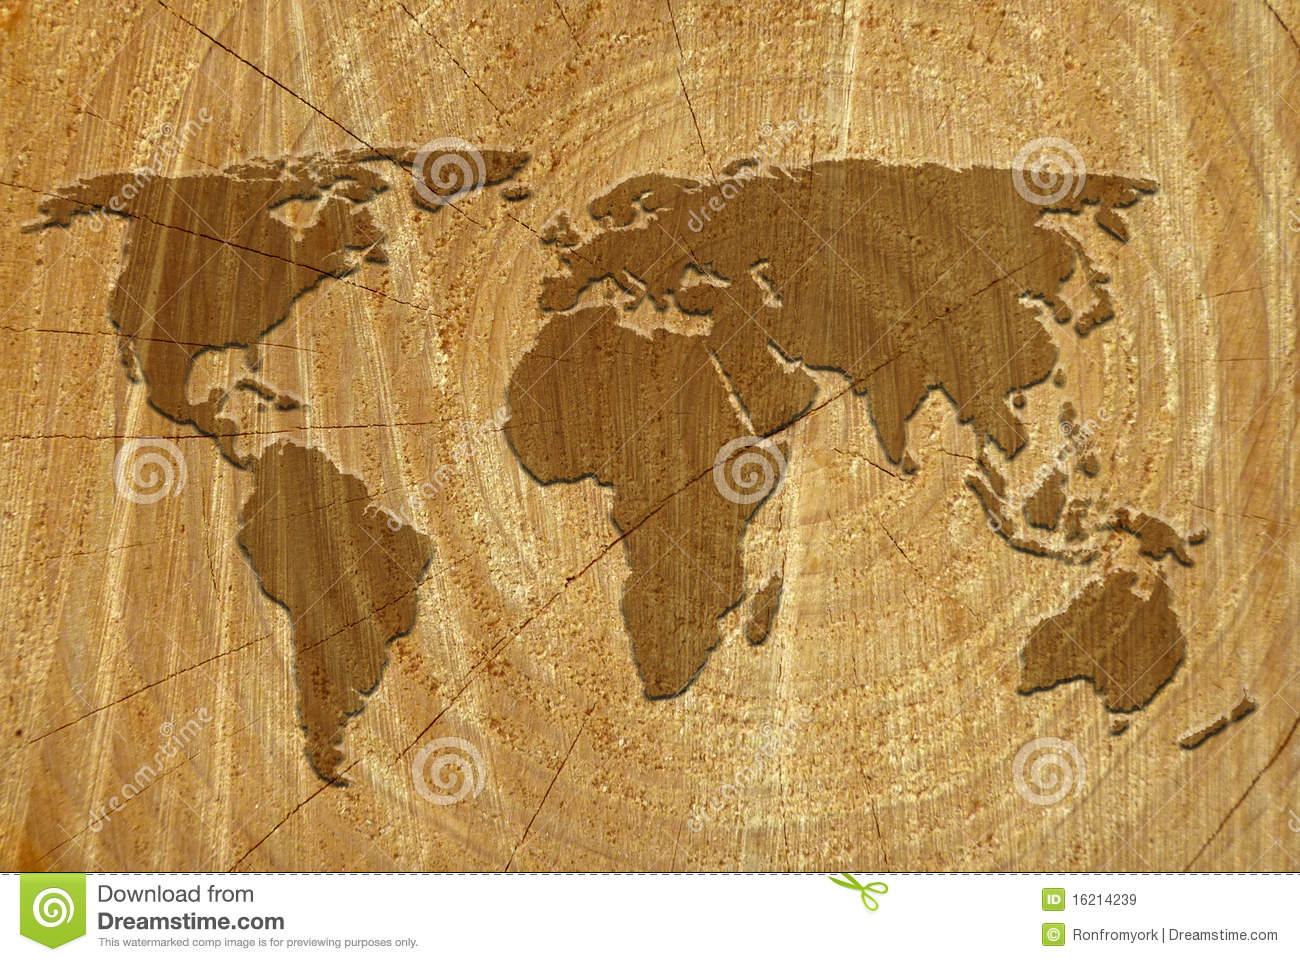 3d Animation Wallpaper Download World Map On Wood Surface Royalty Free Stock Images